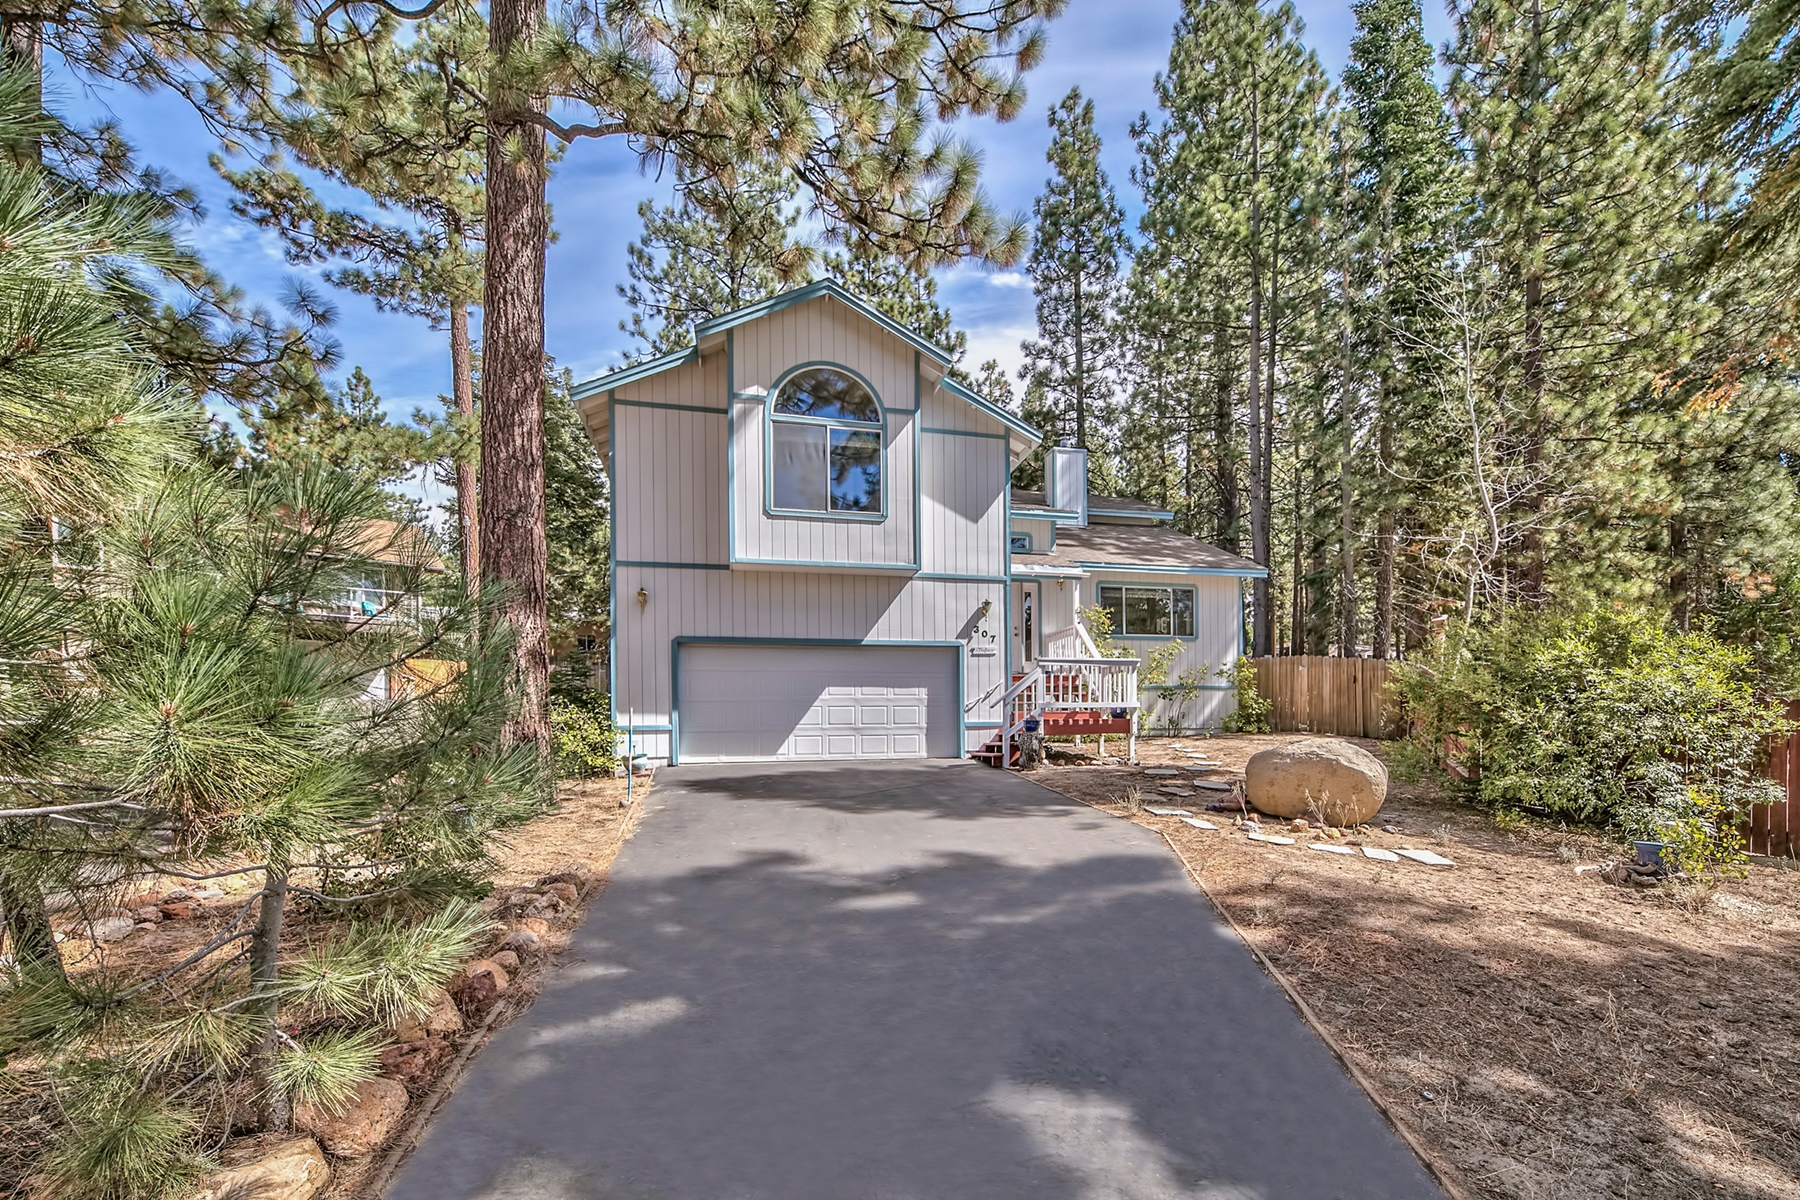 Additional photo for property listing at 307 Chimney Rock Road, Stateline, NV, 89449 307 Chimney Rock Road Stateline, Nevada 89449 United States